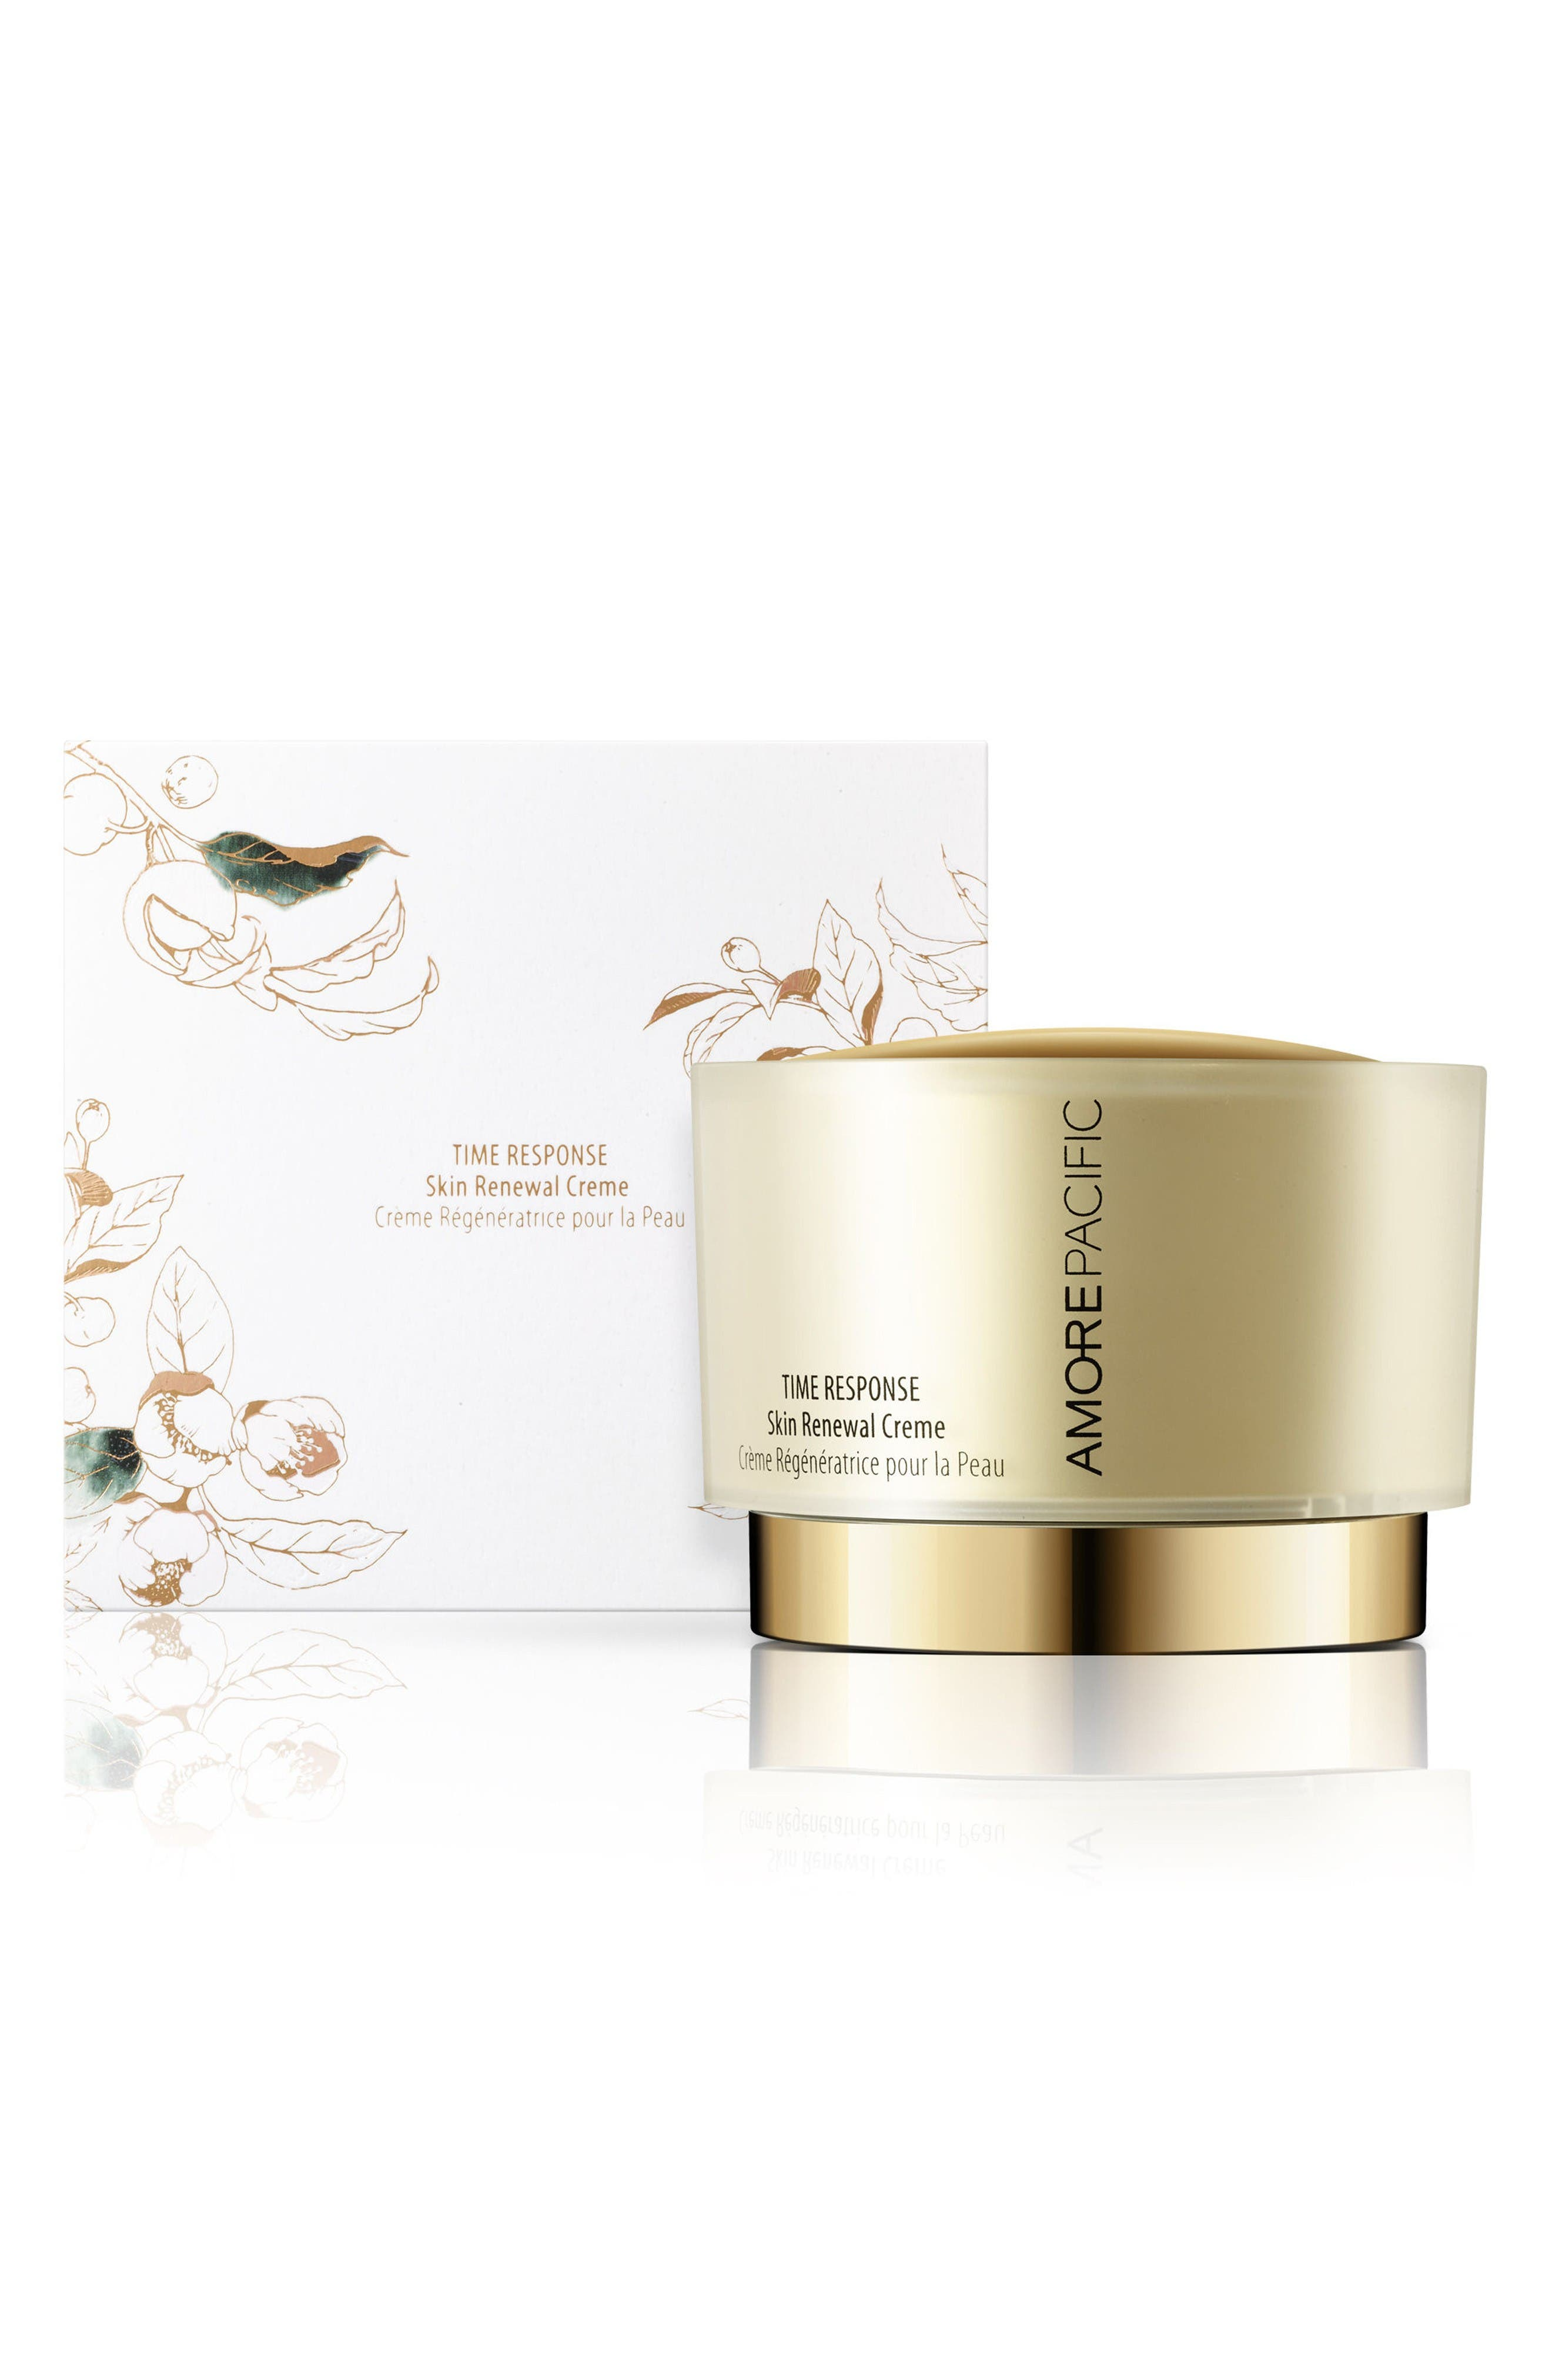 AMOREPACIFIC Time Response Skin Renewal Crème (Limited Edition)